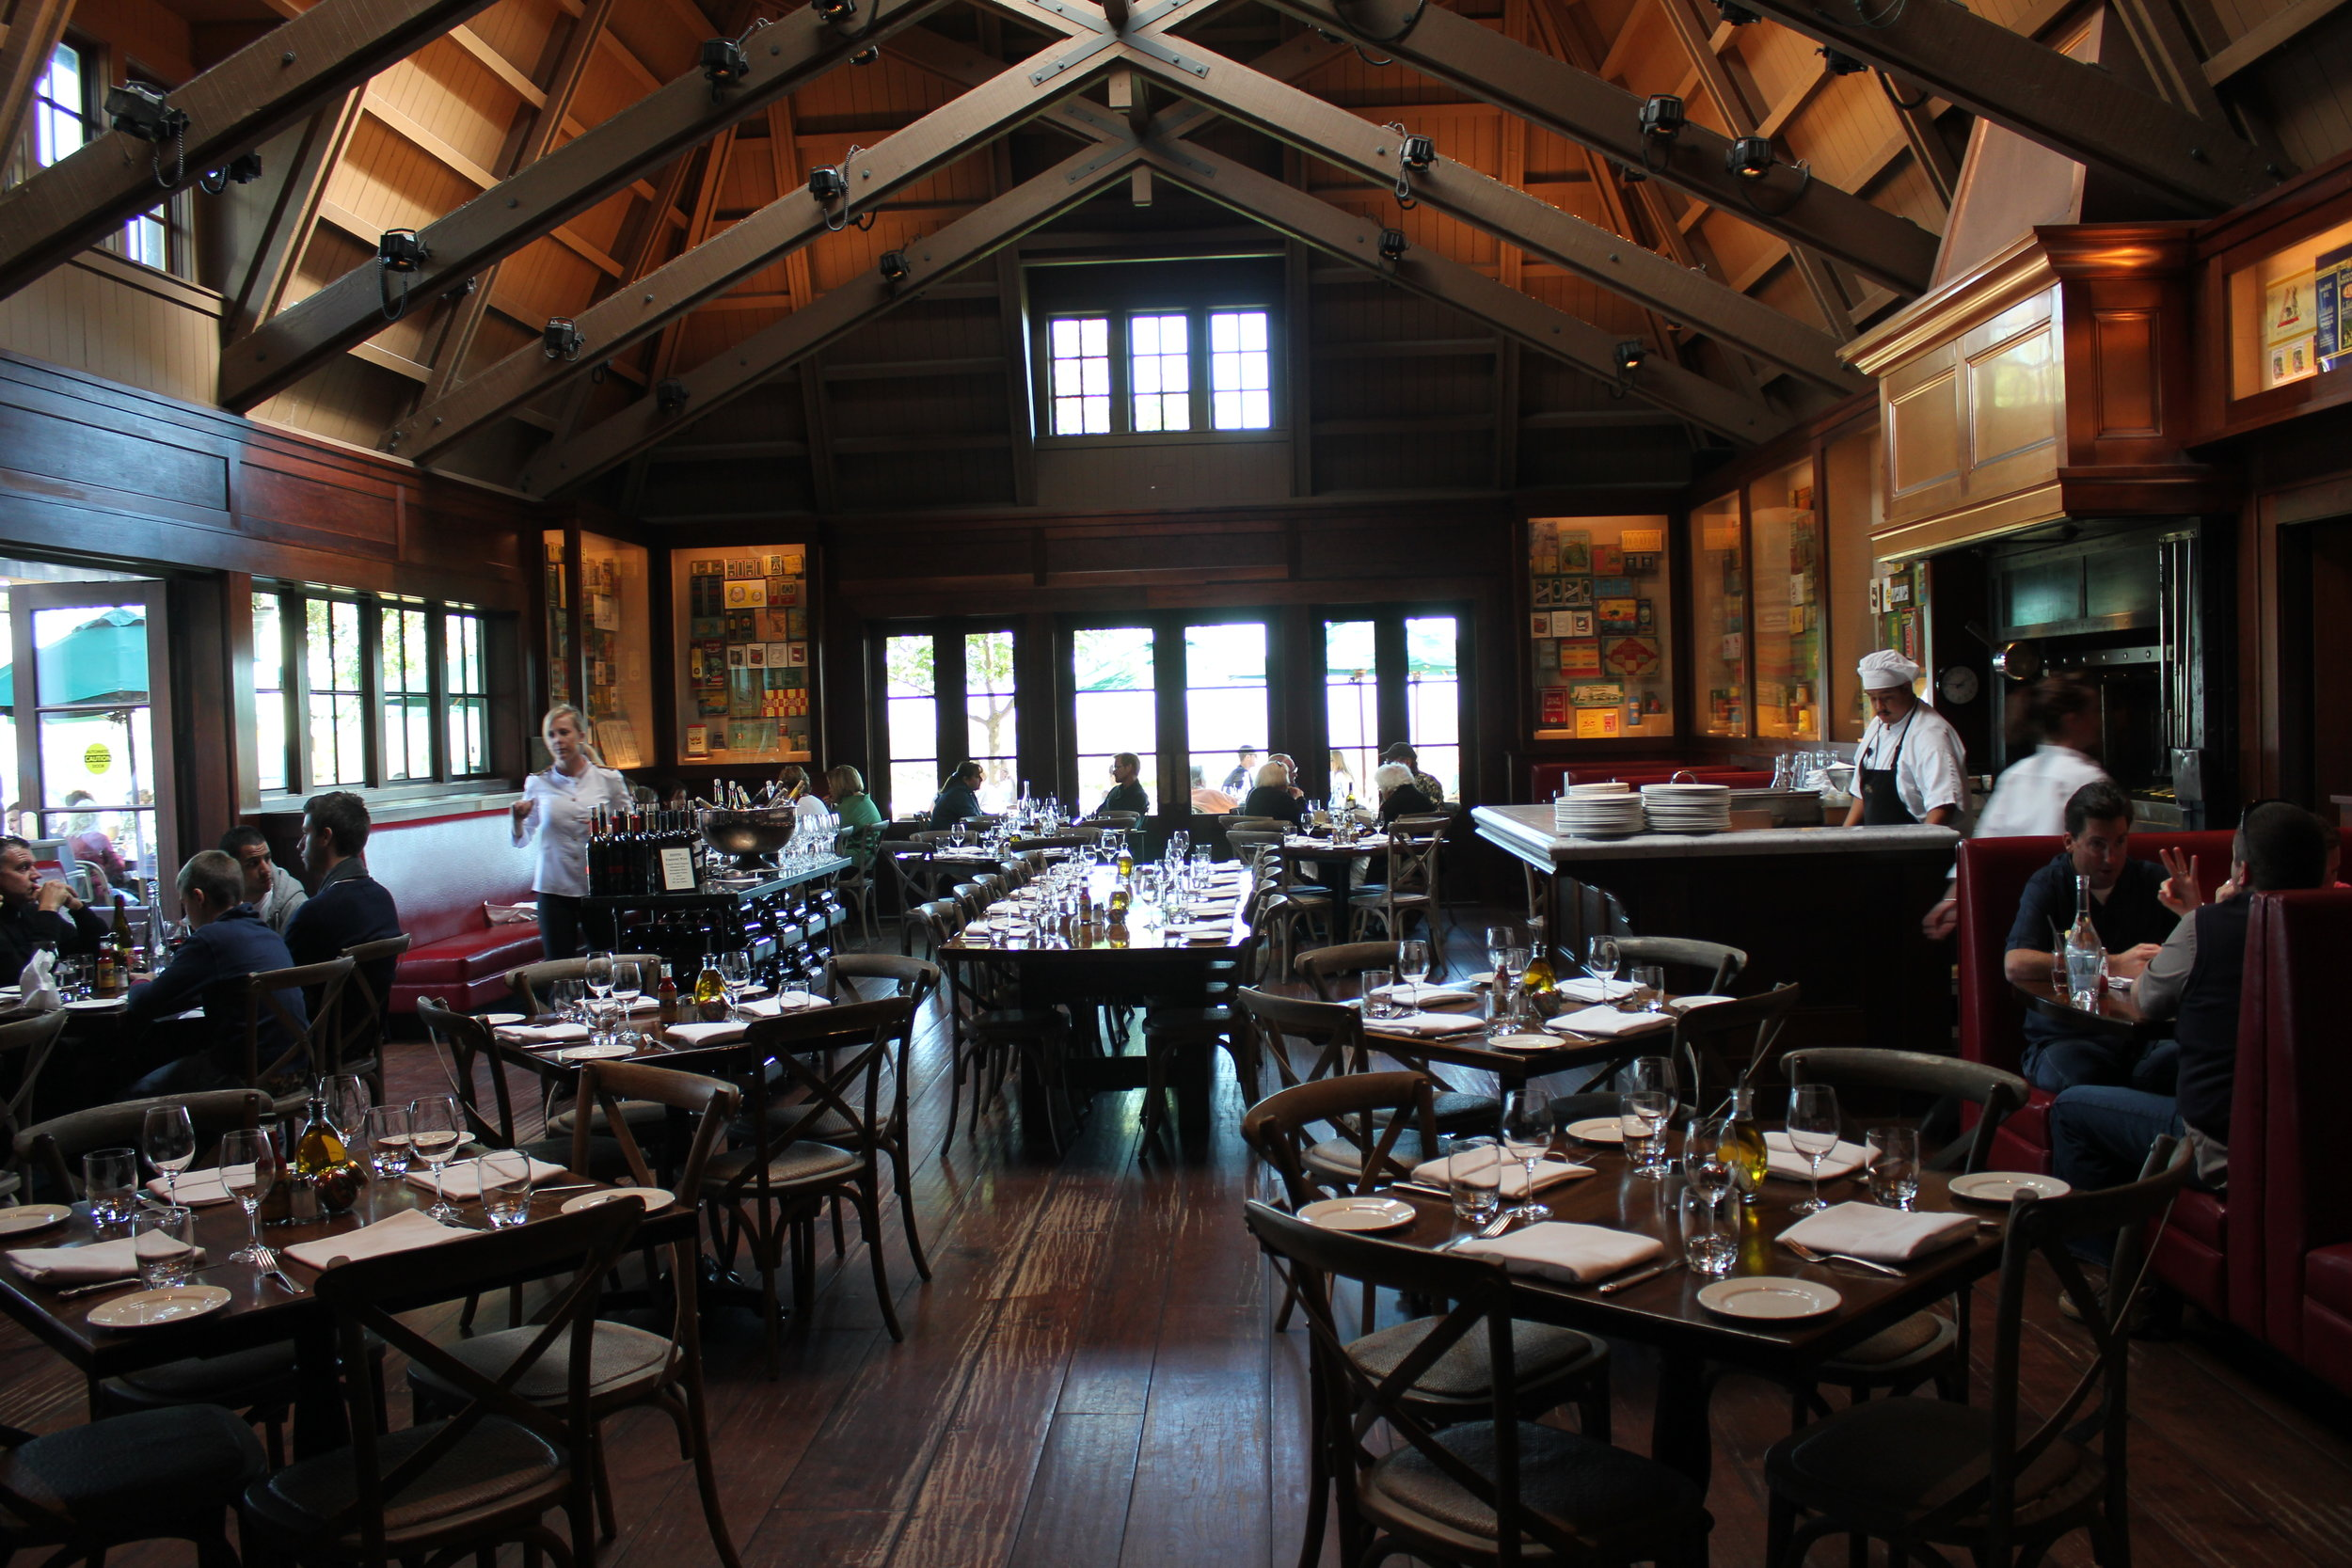 Dining room at Coppola Winery Restaurant Rustic